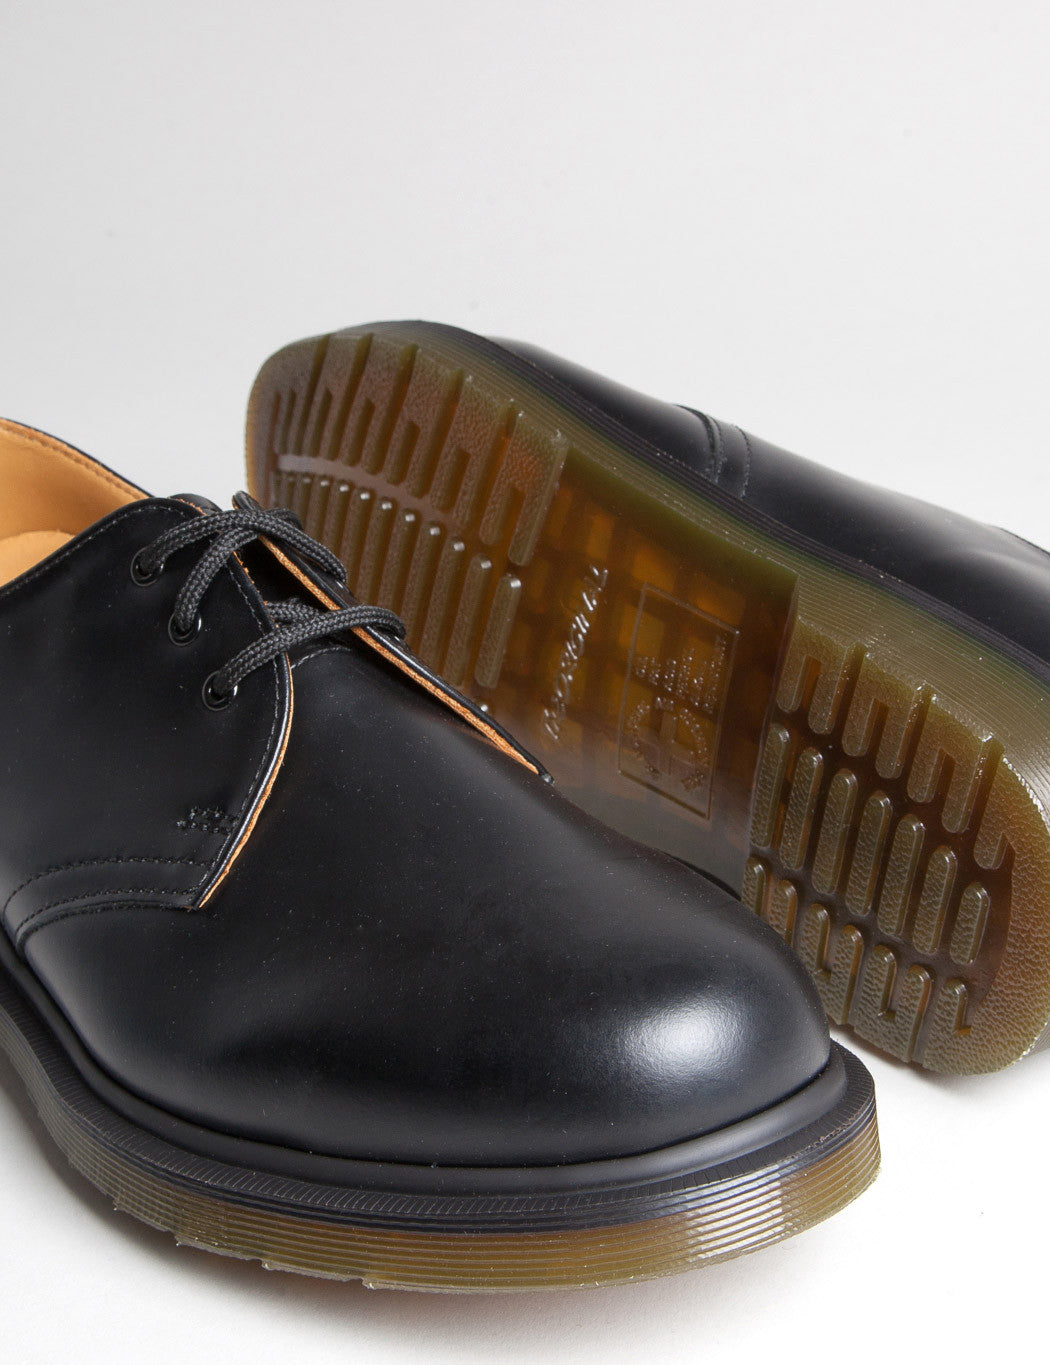 new collection new style look for Dr Martens 1461 Plain Welt Shoes (11839002) - Black Smooth